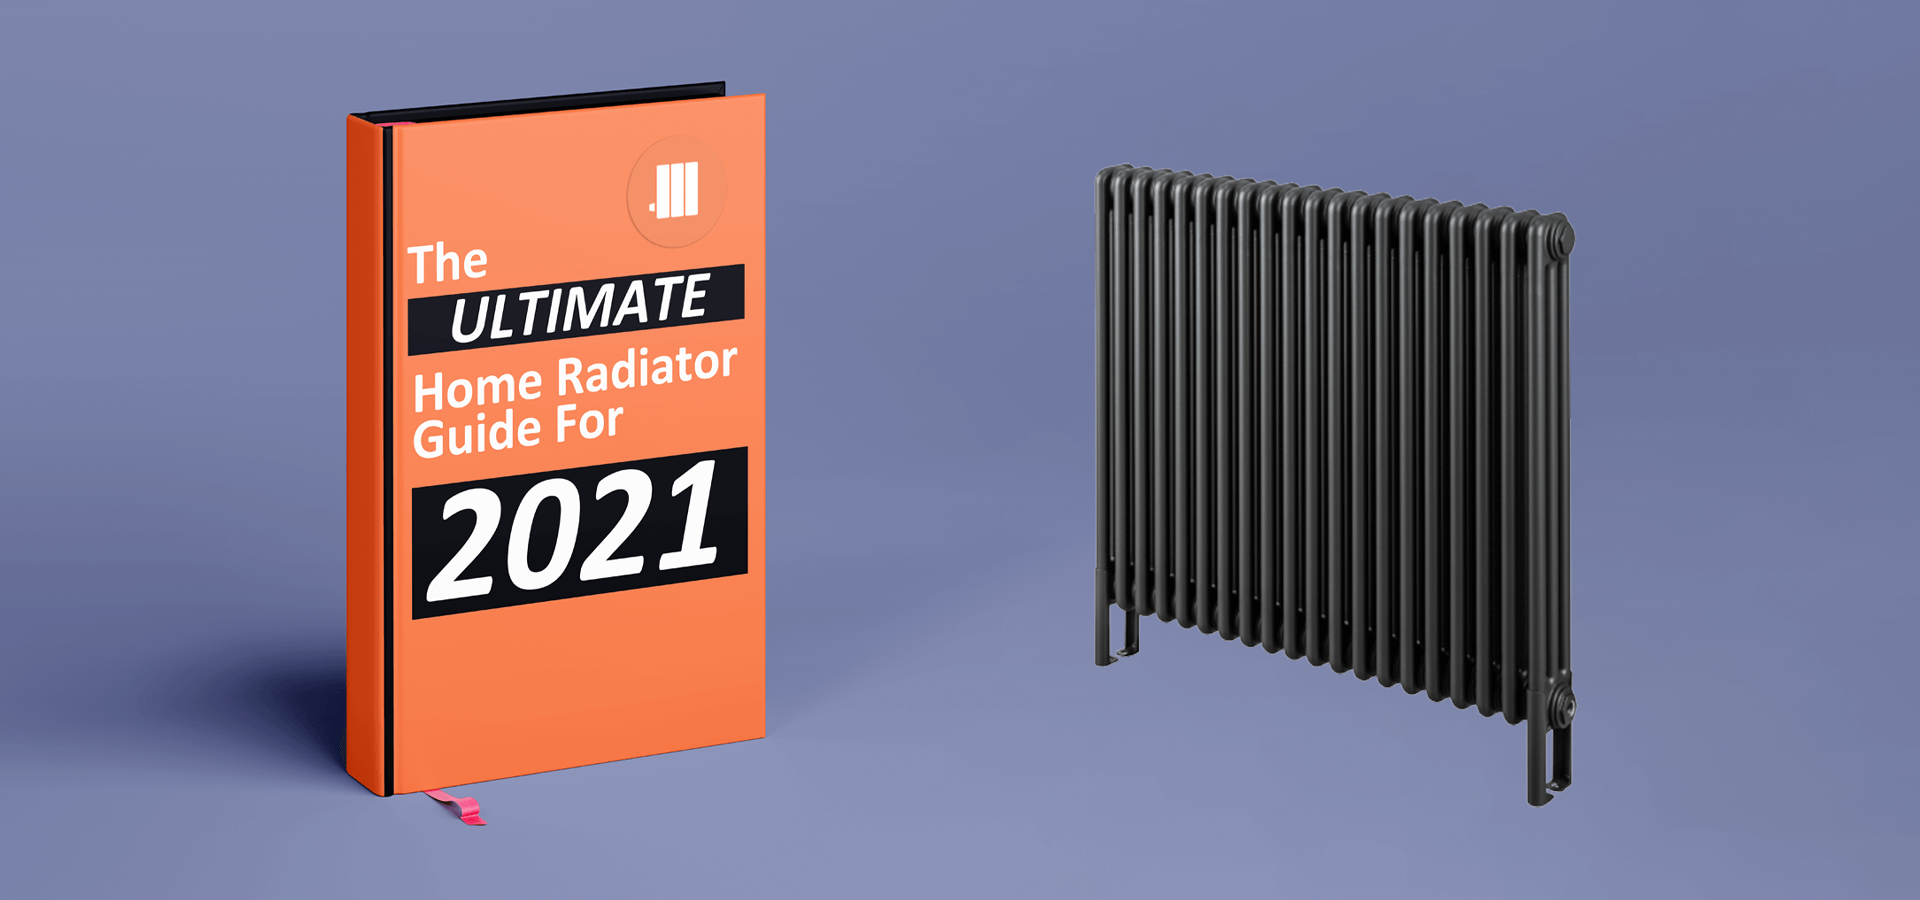 The Ultimate Home Radiator Guide For 2021